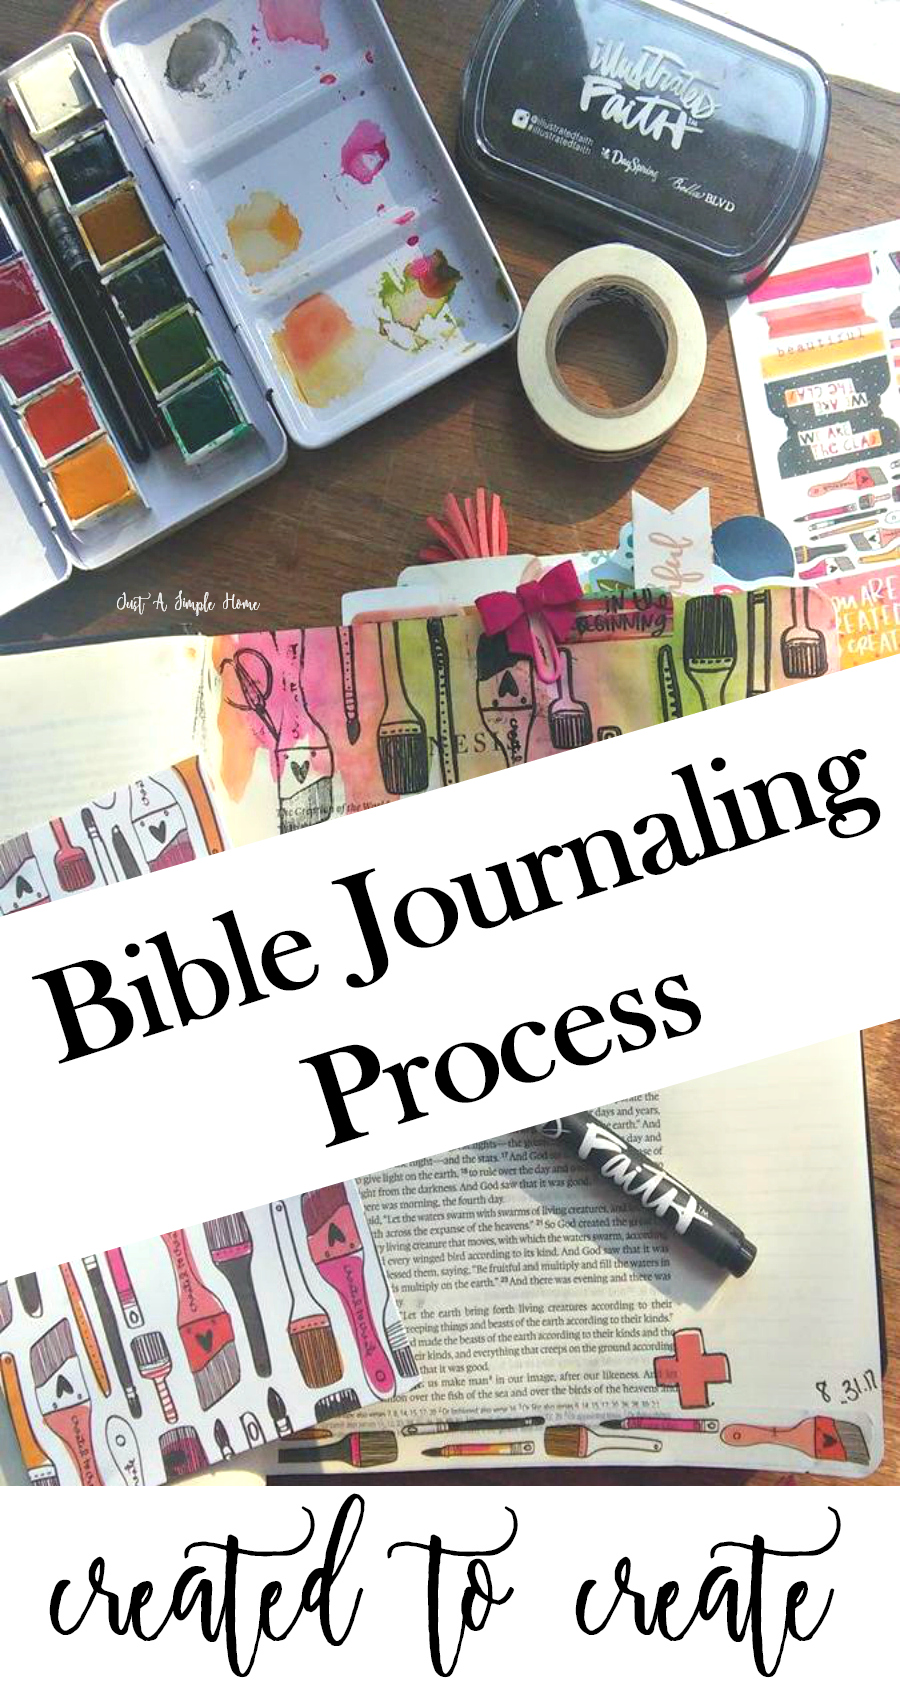 Bible Journaling How to Process Created to Create Illustrated Faith